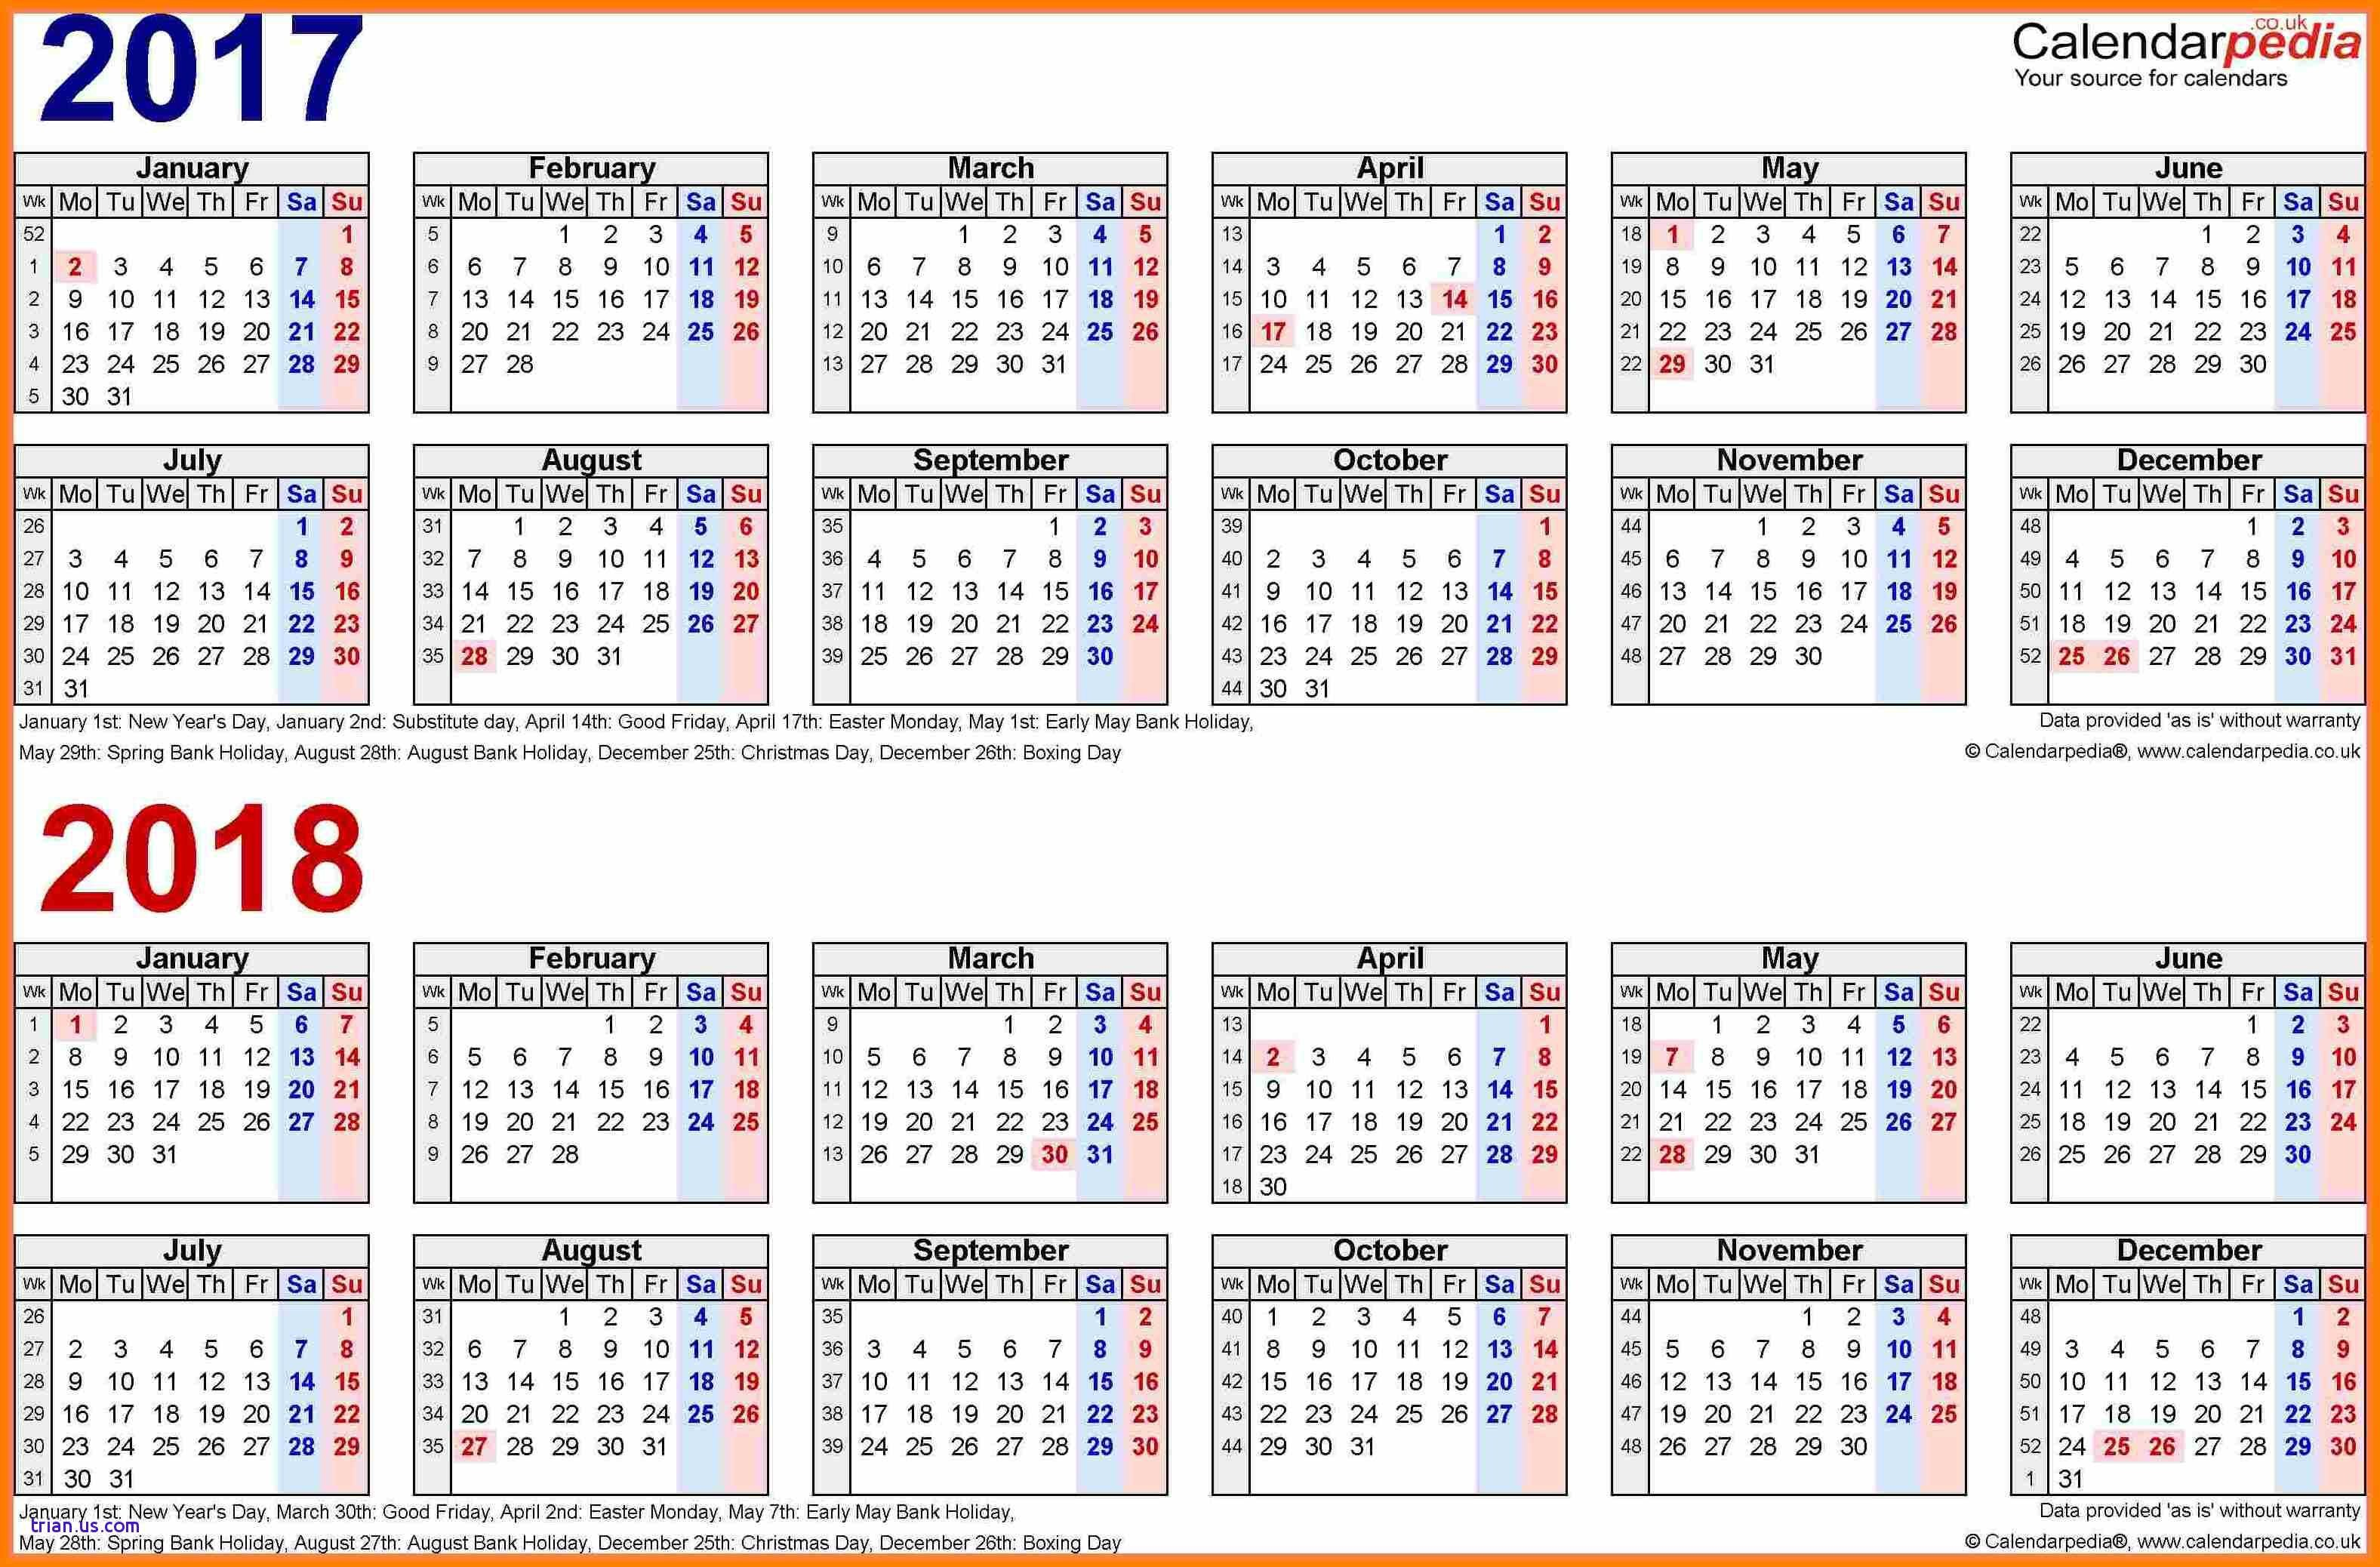 2017 biweekly payroll calendar template excel top rated 38 new pics